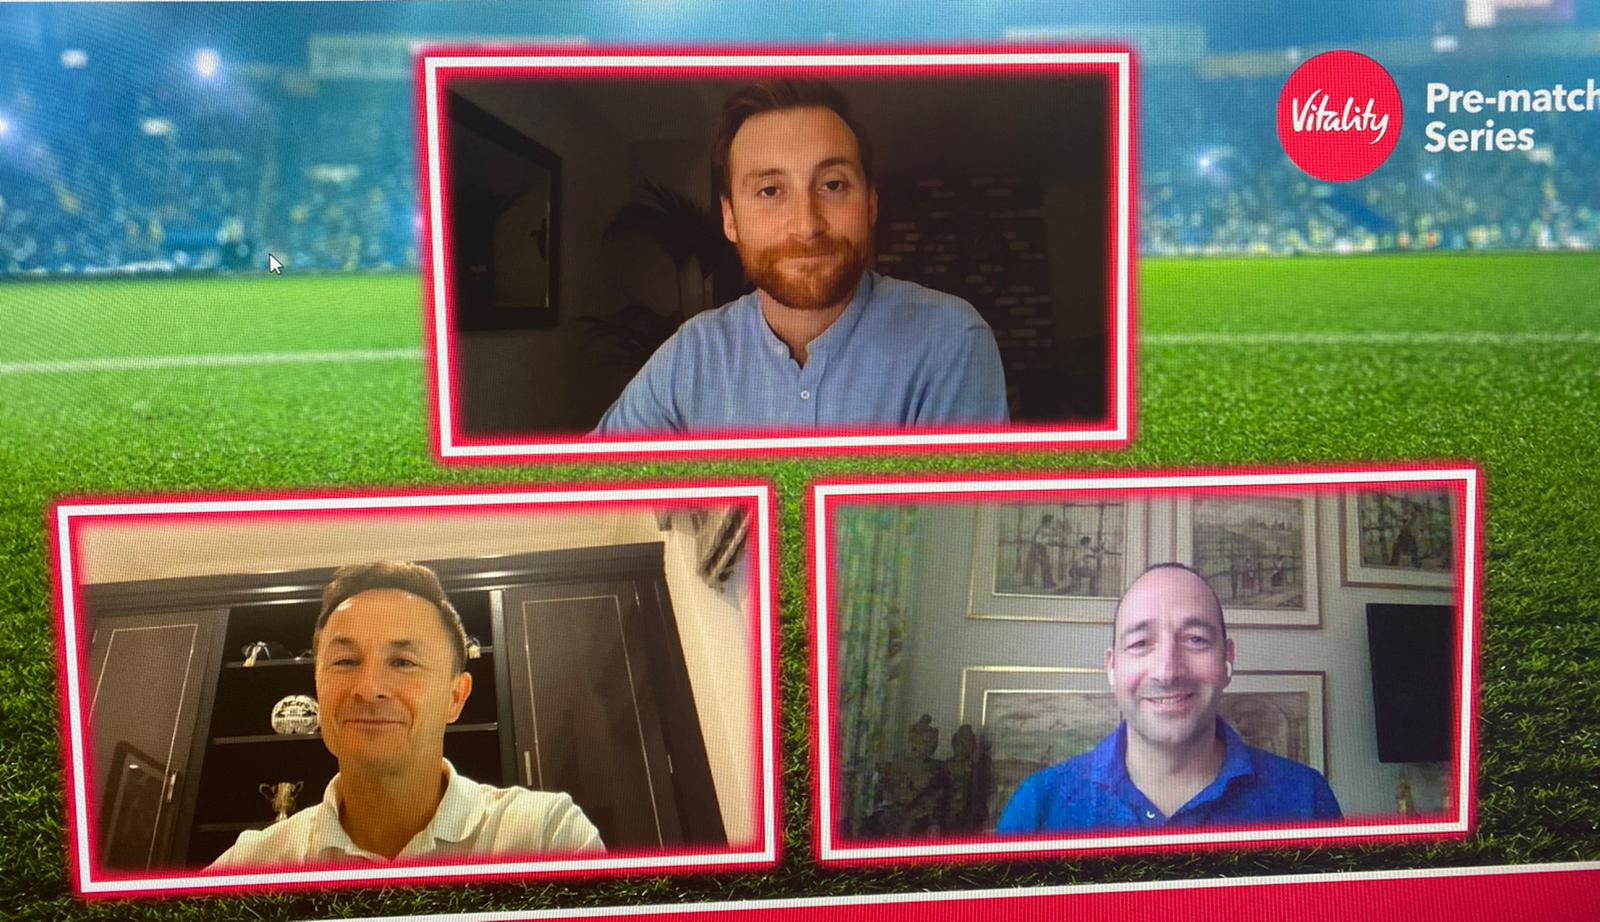 Toby Tarrant hosts Chelsea legend, Dennis Wise & Vitality's Greg Levine during an En2end virtual matchday event